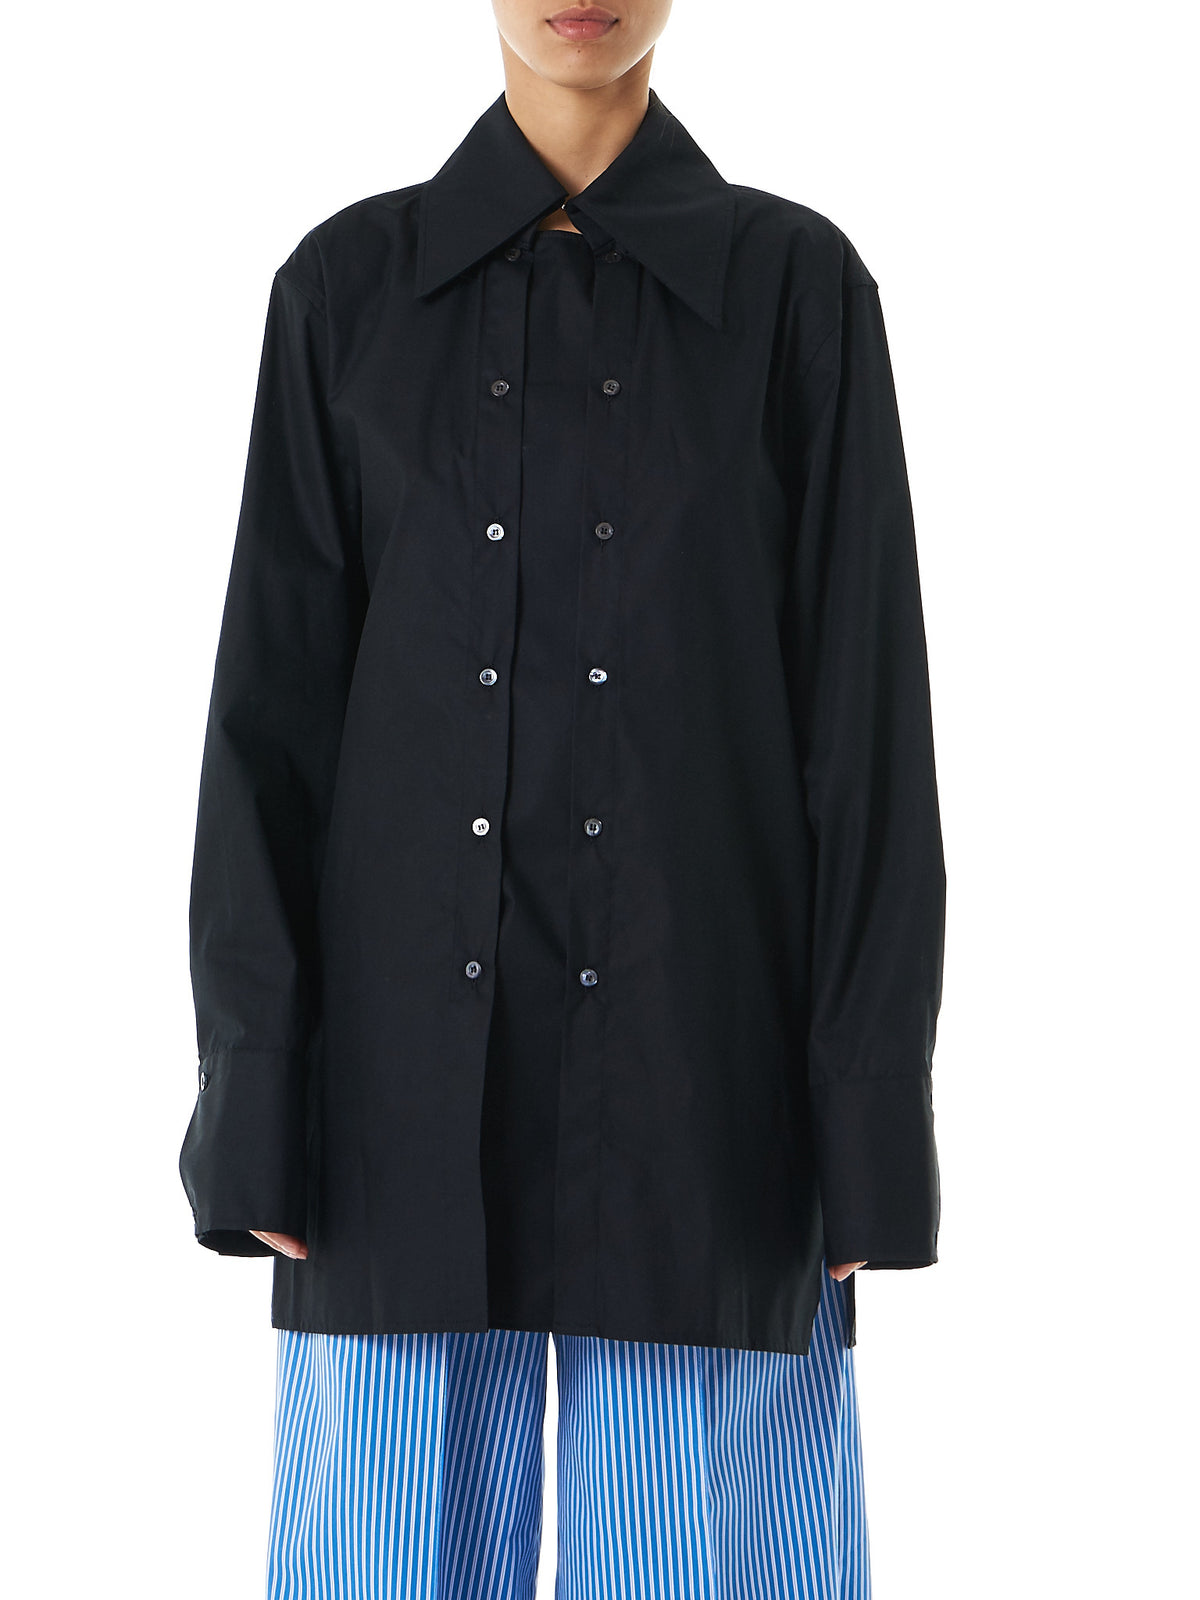 'Exaggerated' Collar Button-Down (SH02-W-BLACK) - H. Lorenzo